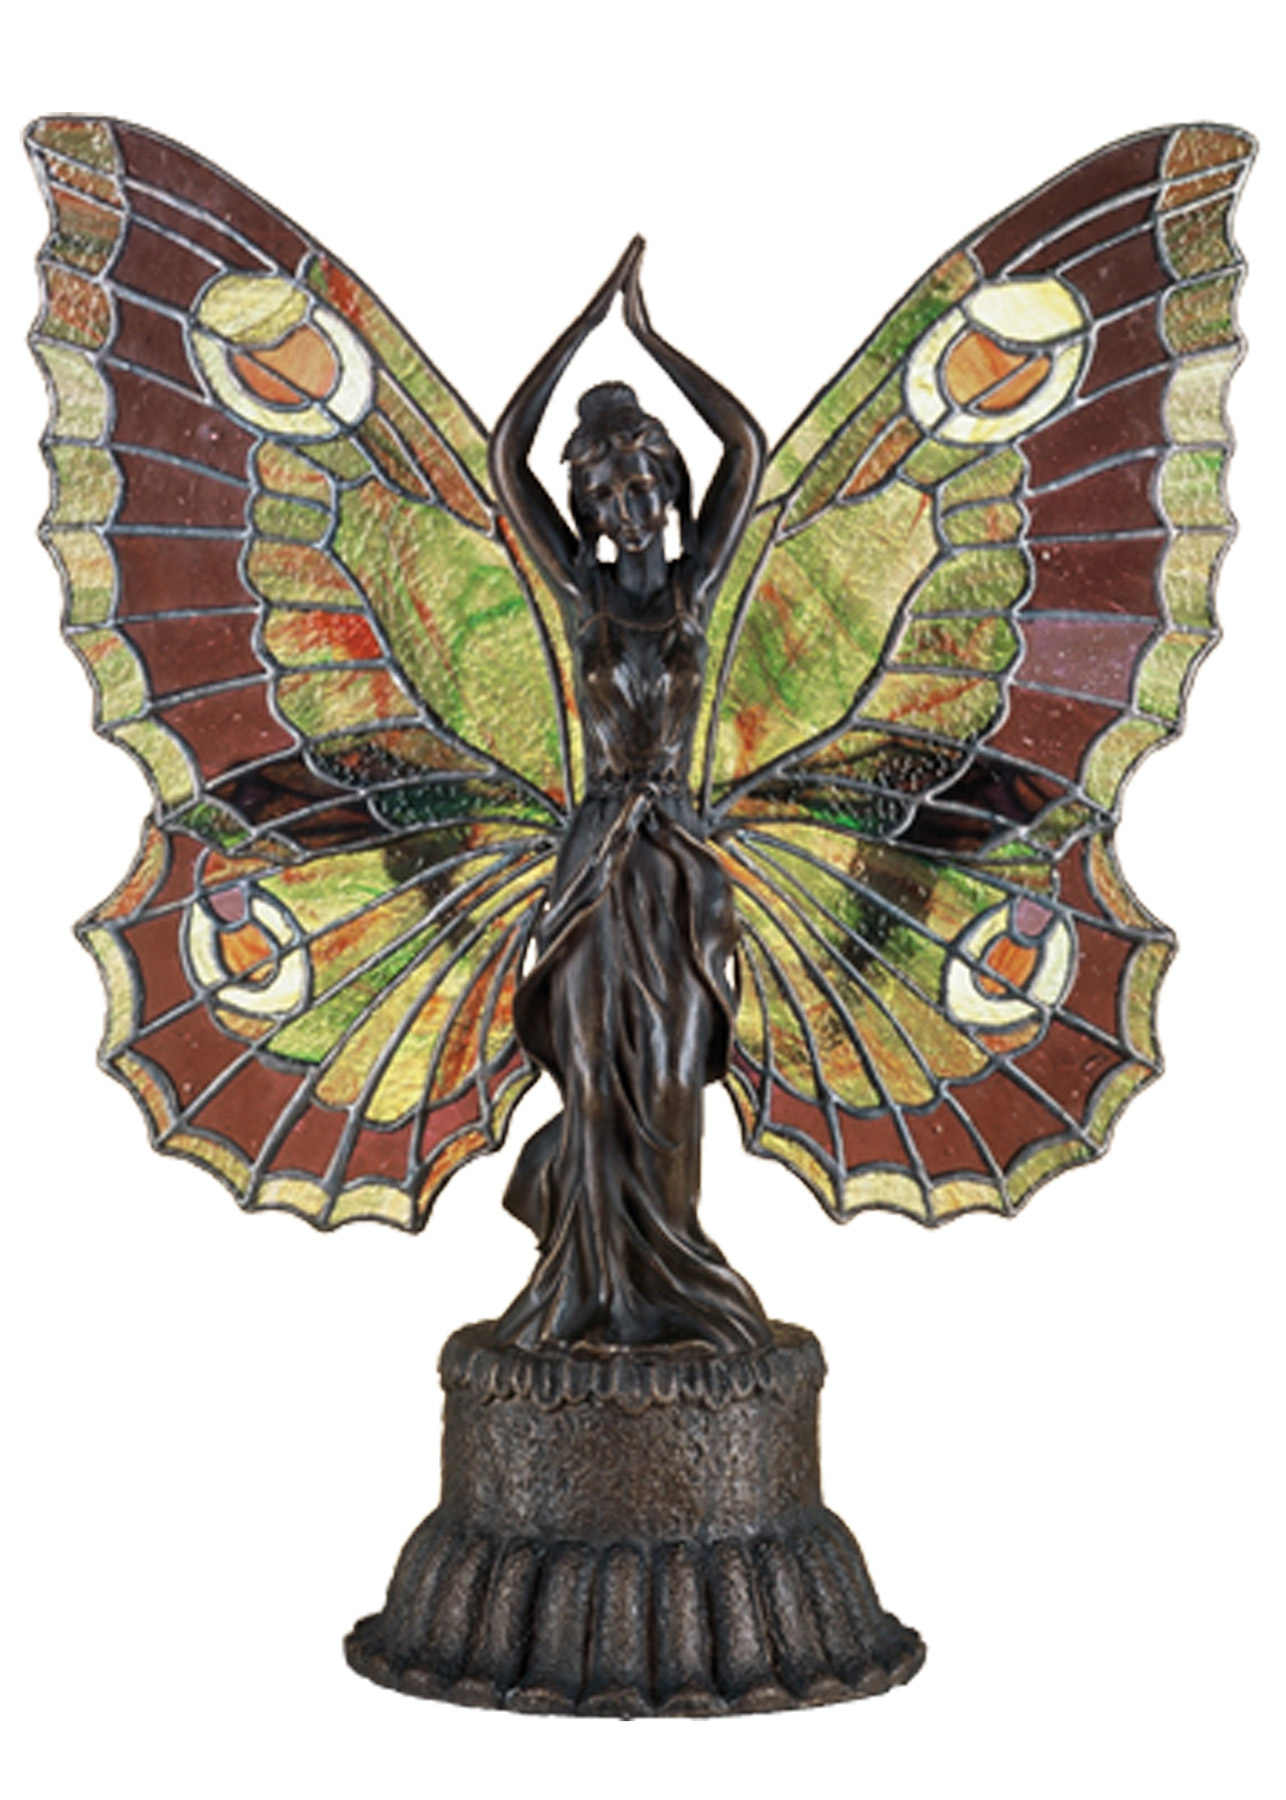 meyda tiffany butterfly lady accent lamp glass table decorative wine rack lighting lamps long console with drawers outside chairs oval cover gallerie sofa bedside lights jeromes